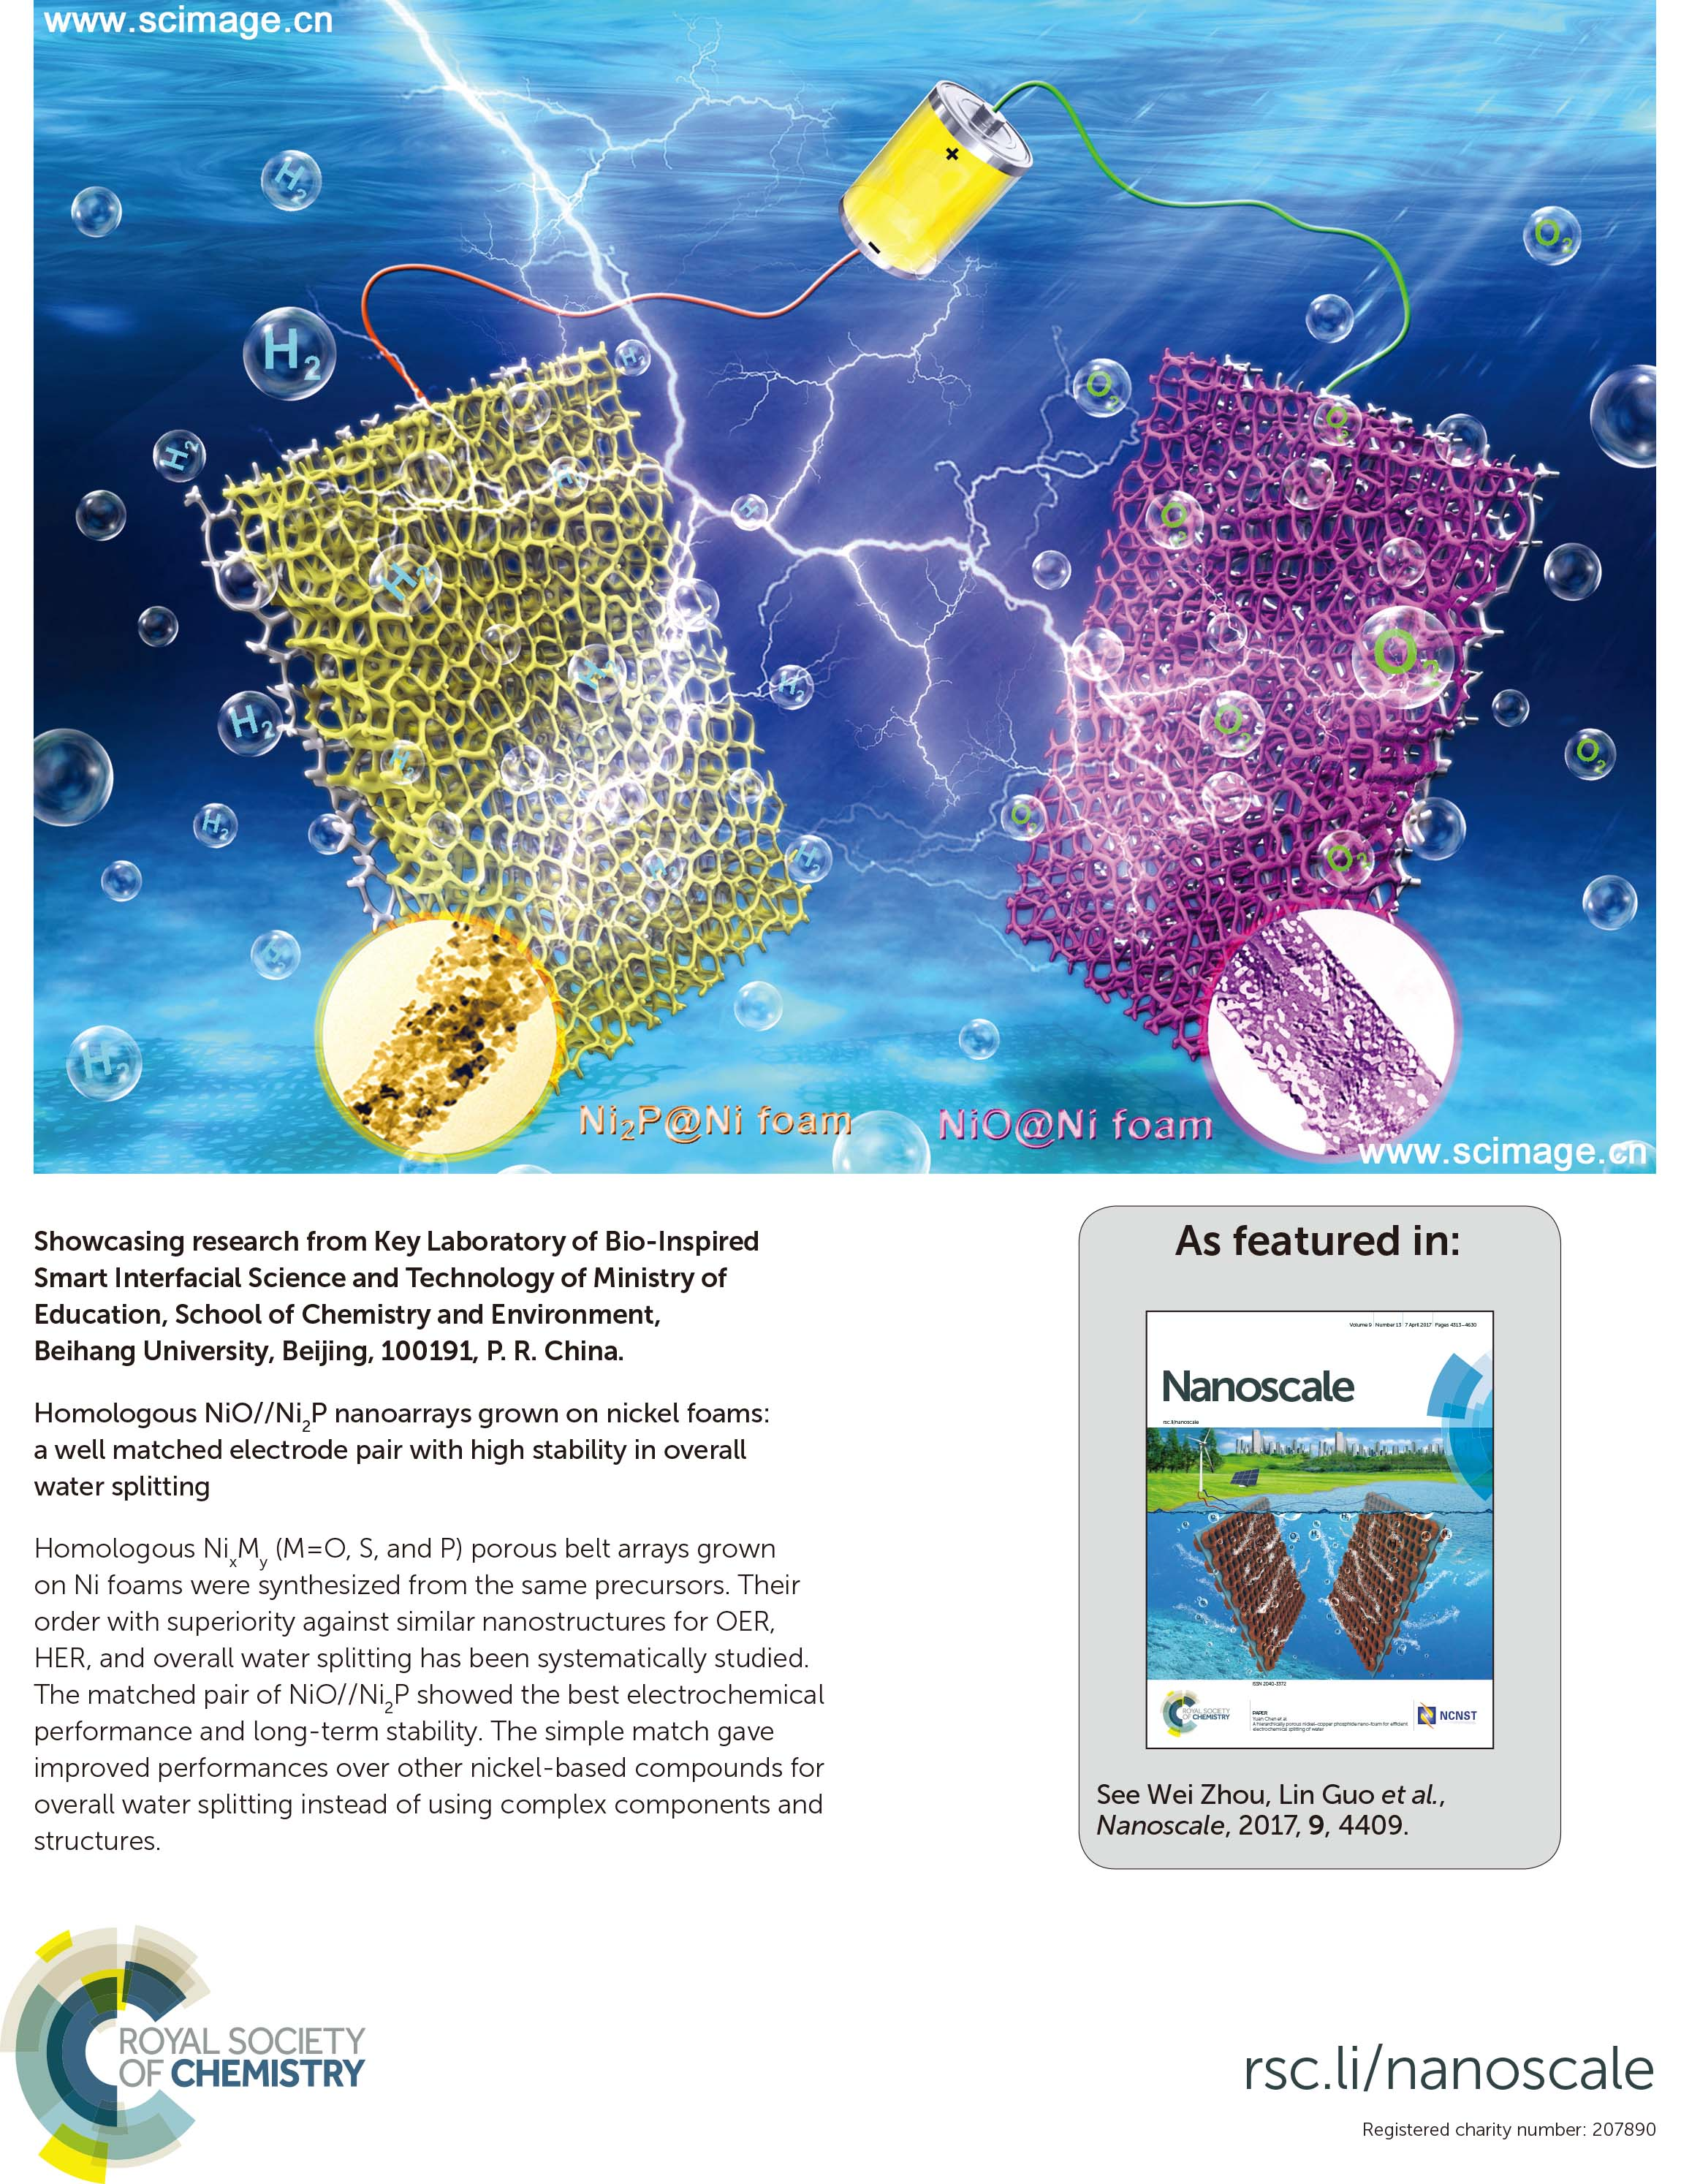 Homologous NiO//Ni2P nanoarrays grown on nickel foams: a well matched electrode pair with high stability in overall water splitting